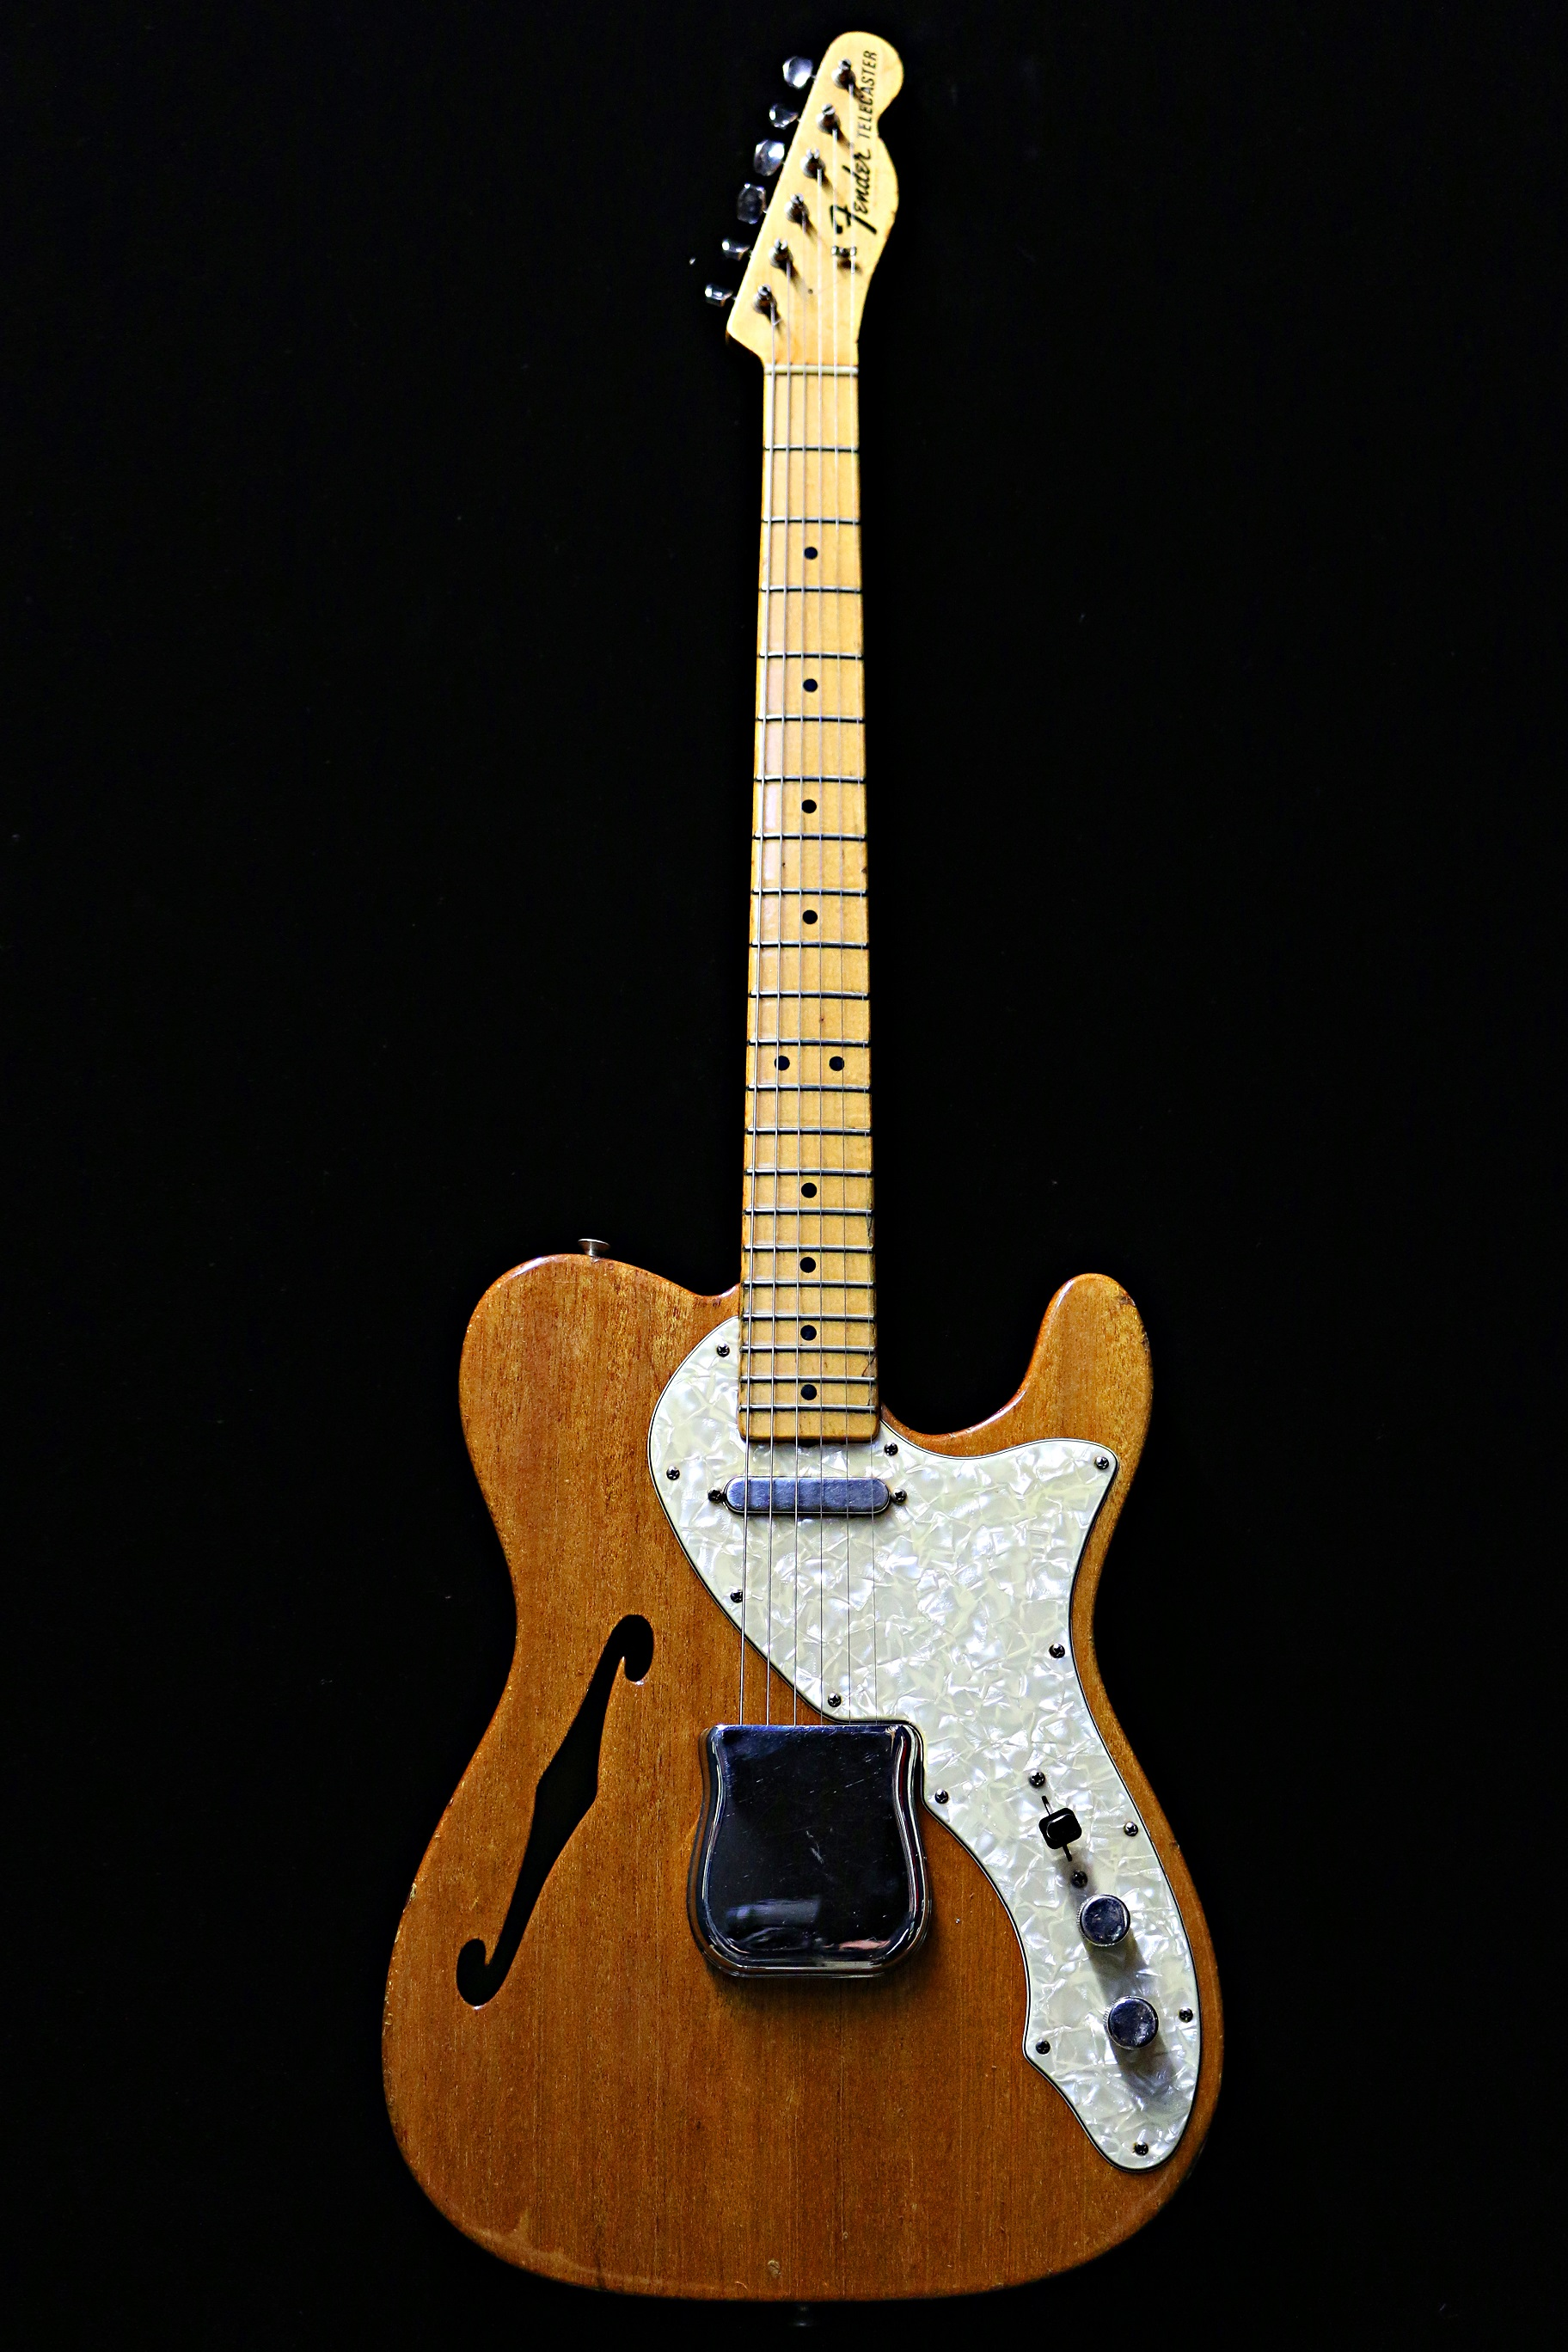 1968 fender telecaster thinline mahogany guitars electric semi hollow body guitare collection. Black Bedroom Furniture Sets. Home Design Ideas